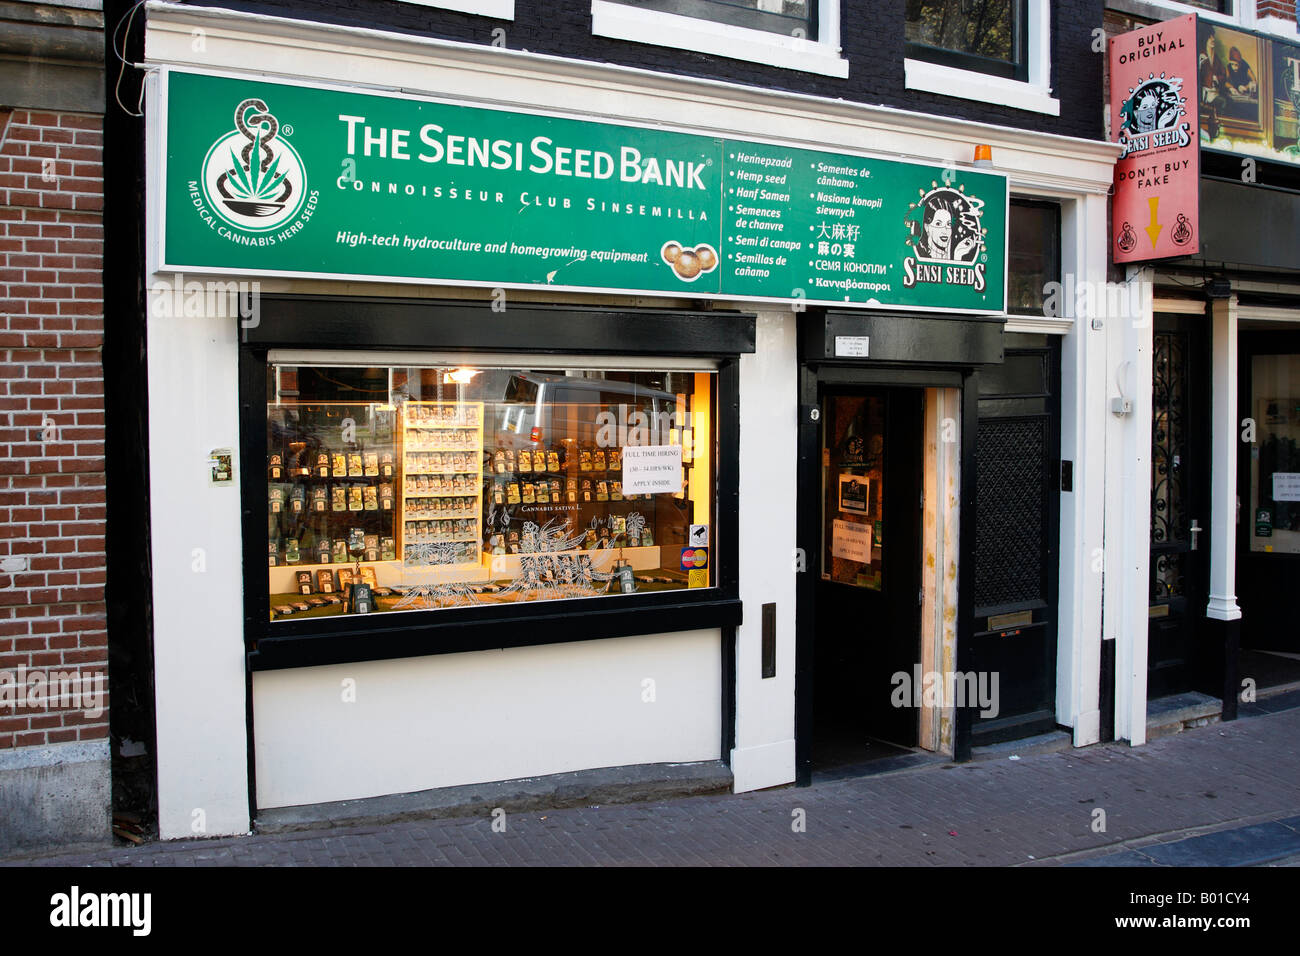 front of the sensi seed bank shop a cannabis drug store